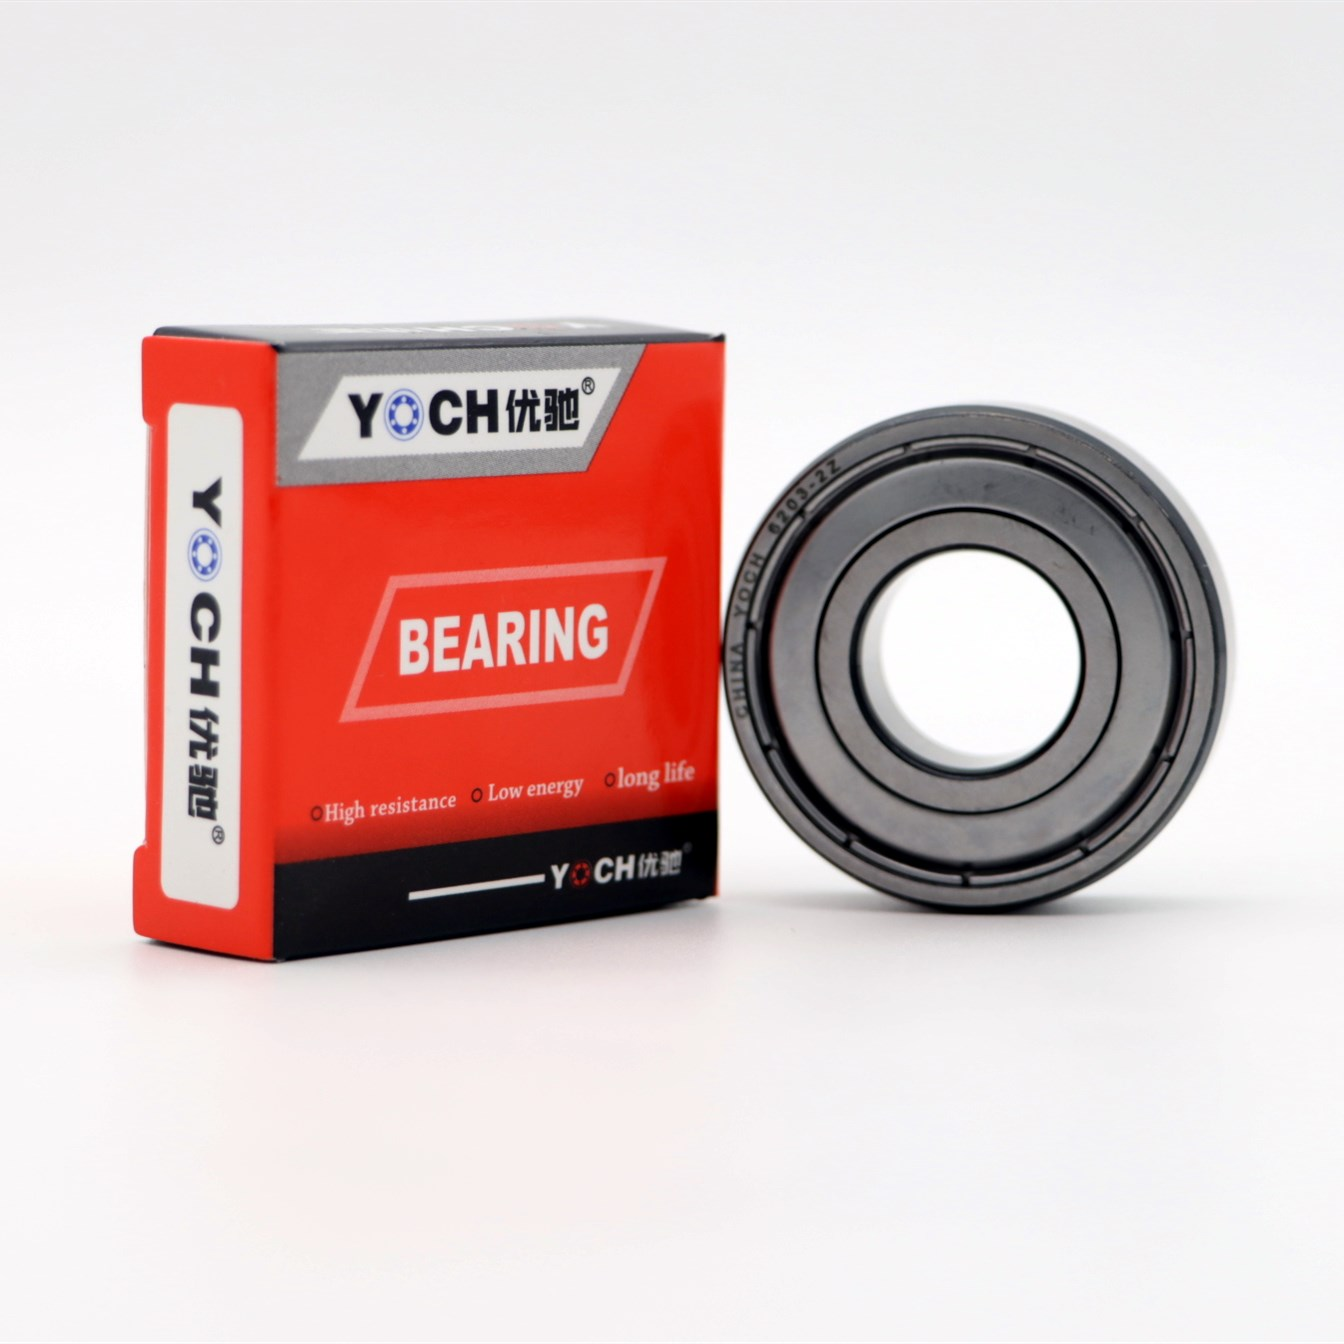 Best Selling /Distributor YOCH bearing High Performance Long Life 3000 Series Tapered Roller Bearing 51216 Auto Parts Bearing